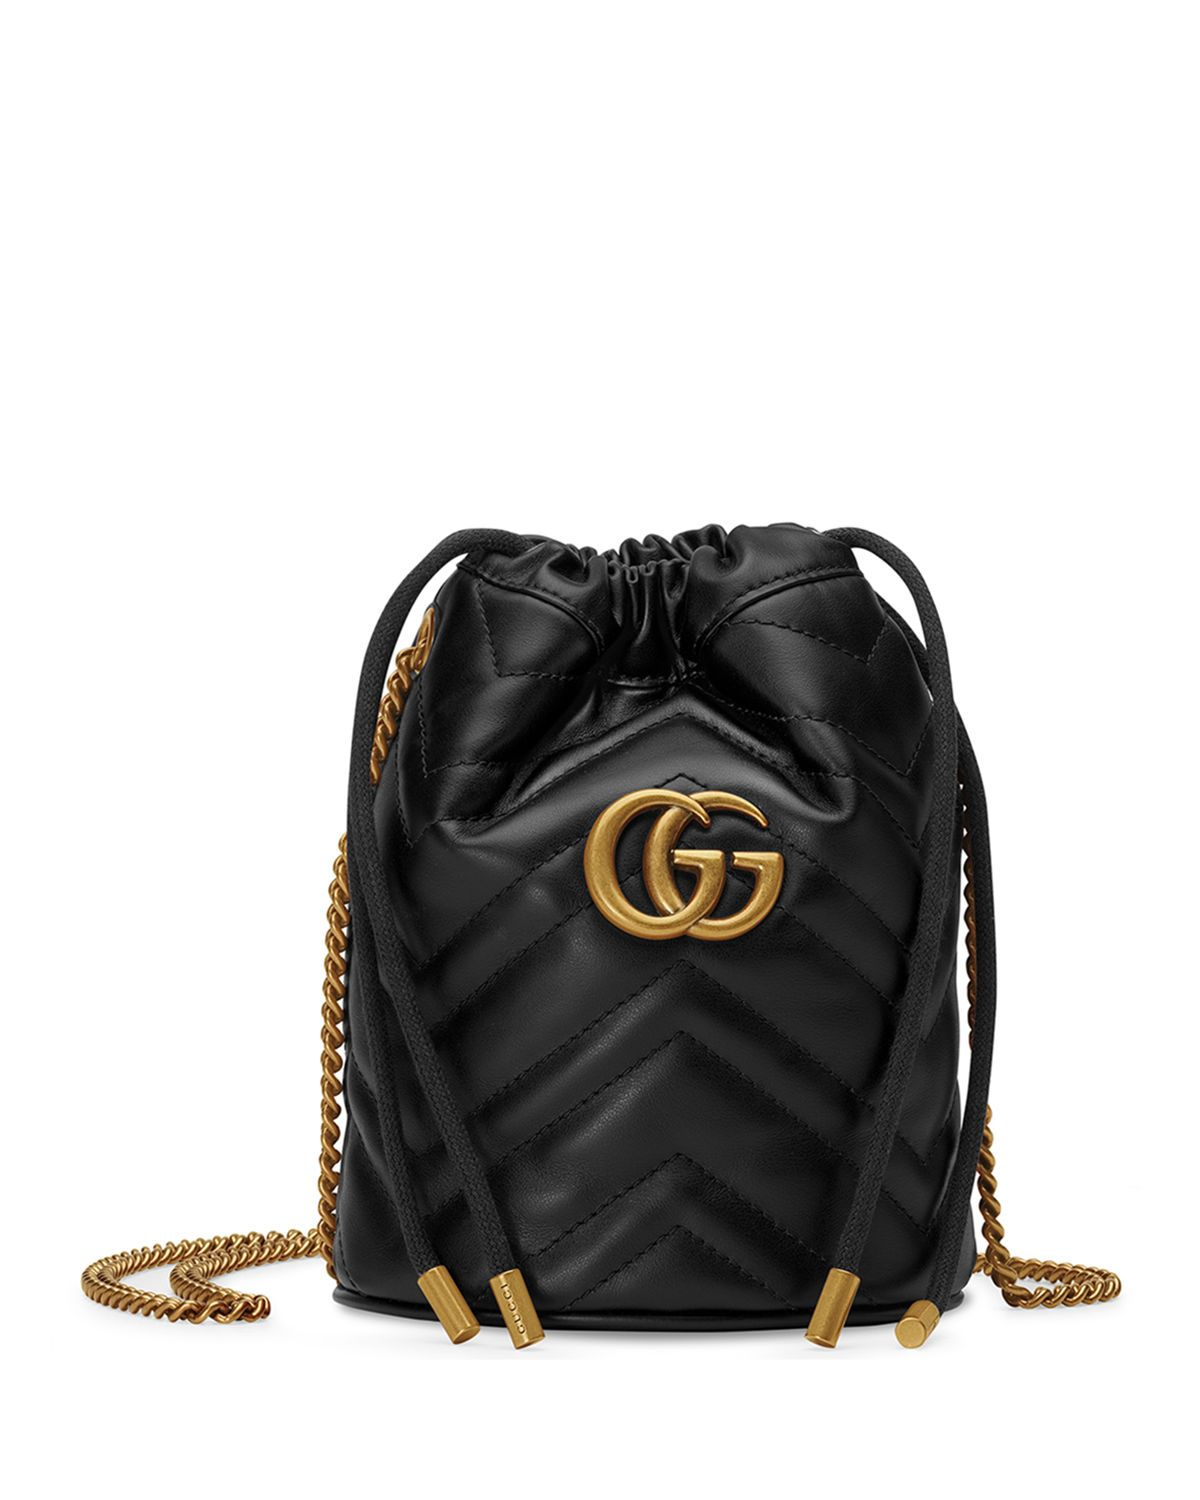 GUCCI GG MARMONT 20 MINI LEATHER BUCKET BAG bags